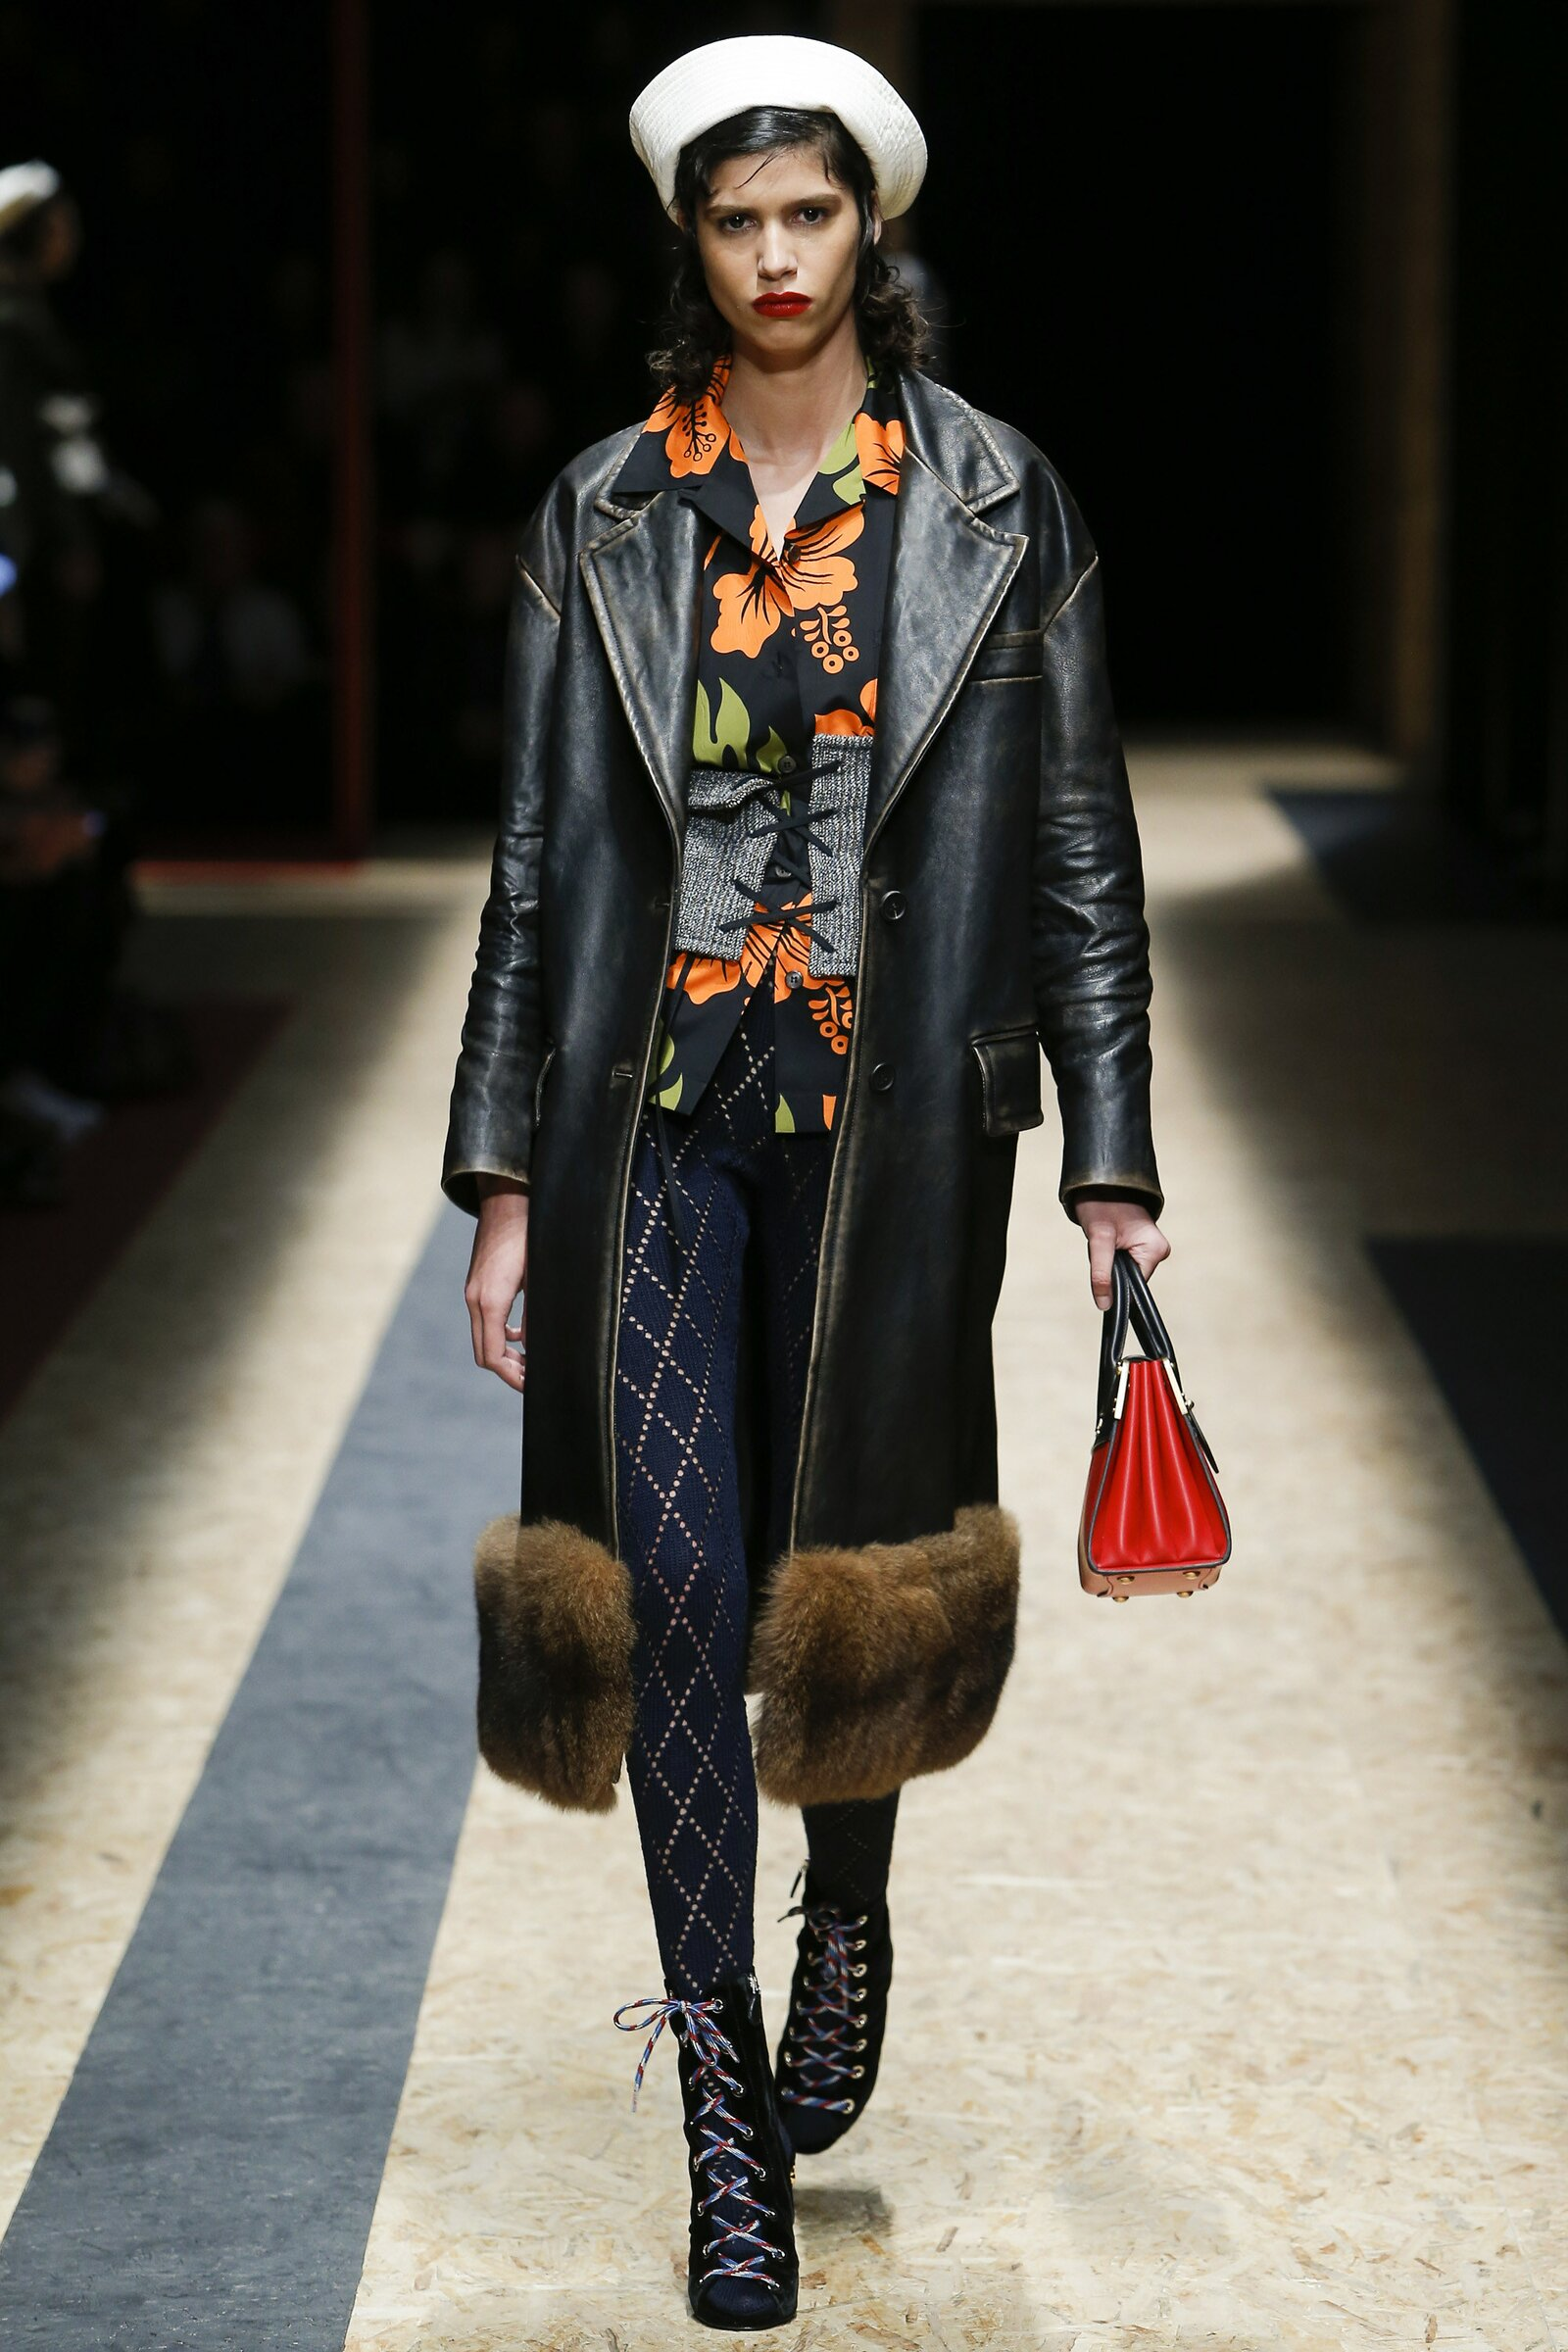 Prada - Milan Fashion Week AW 2016